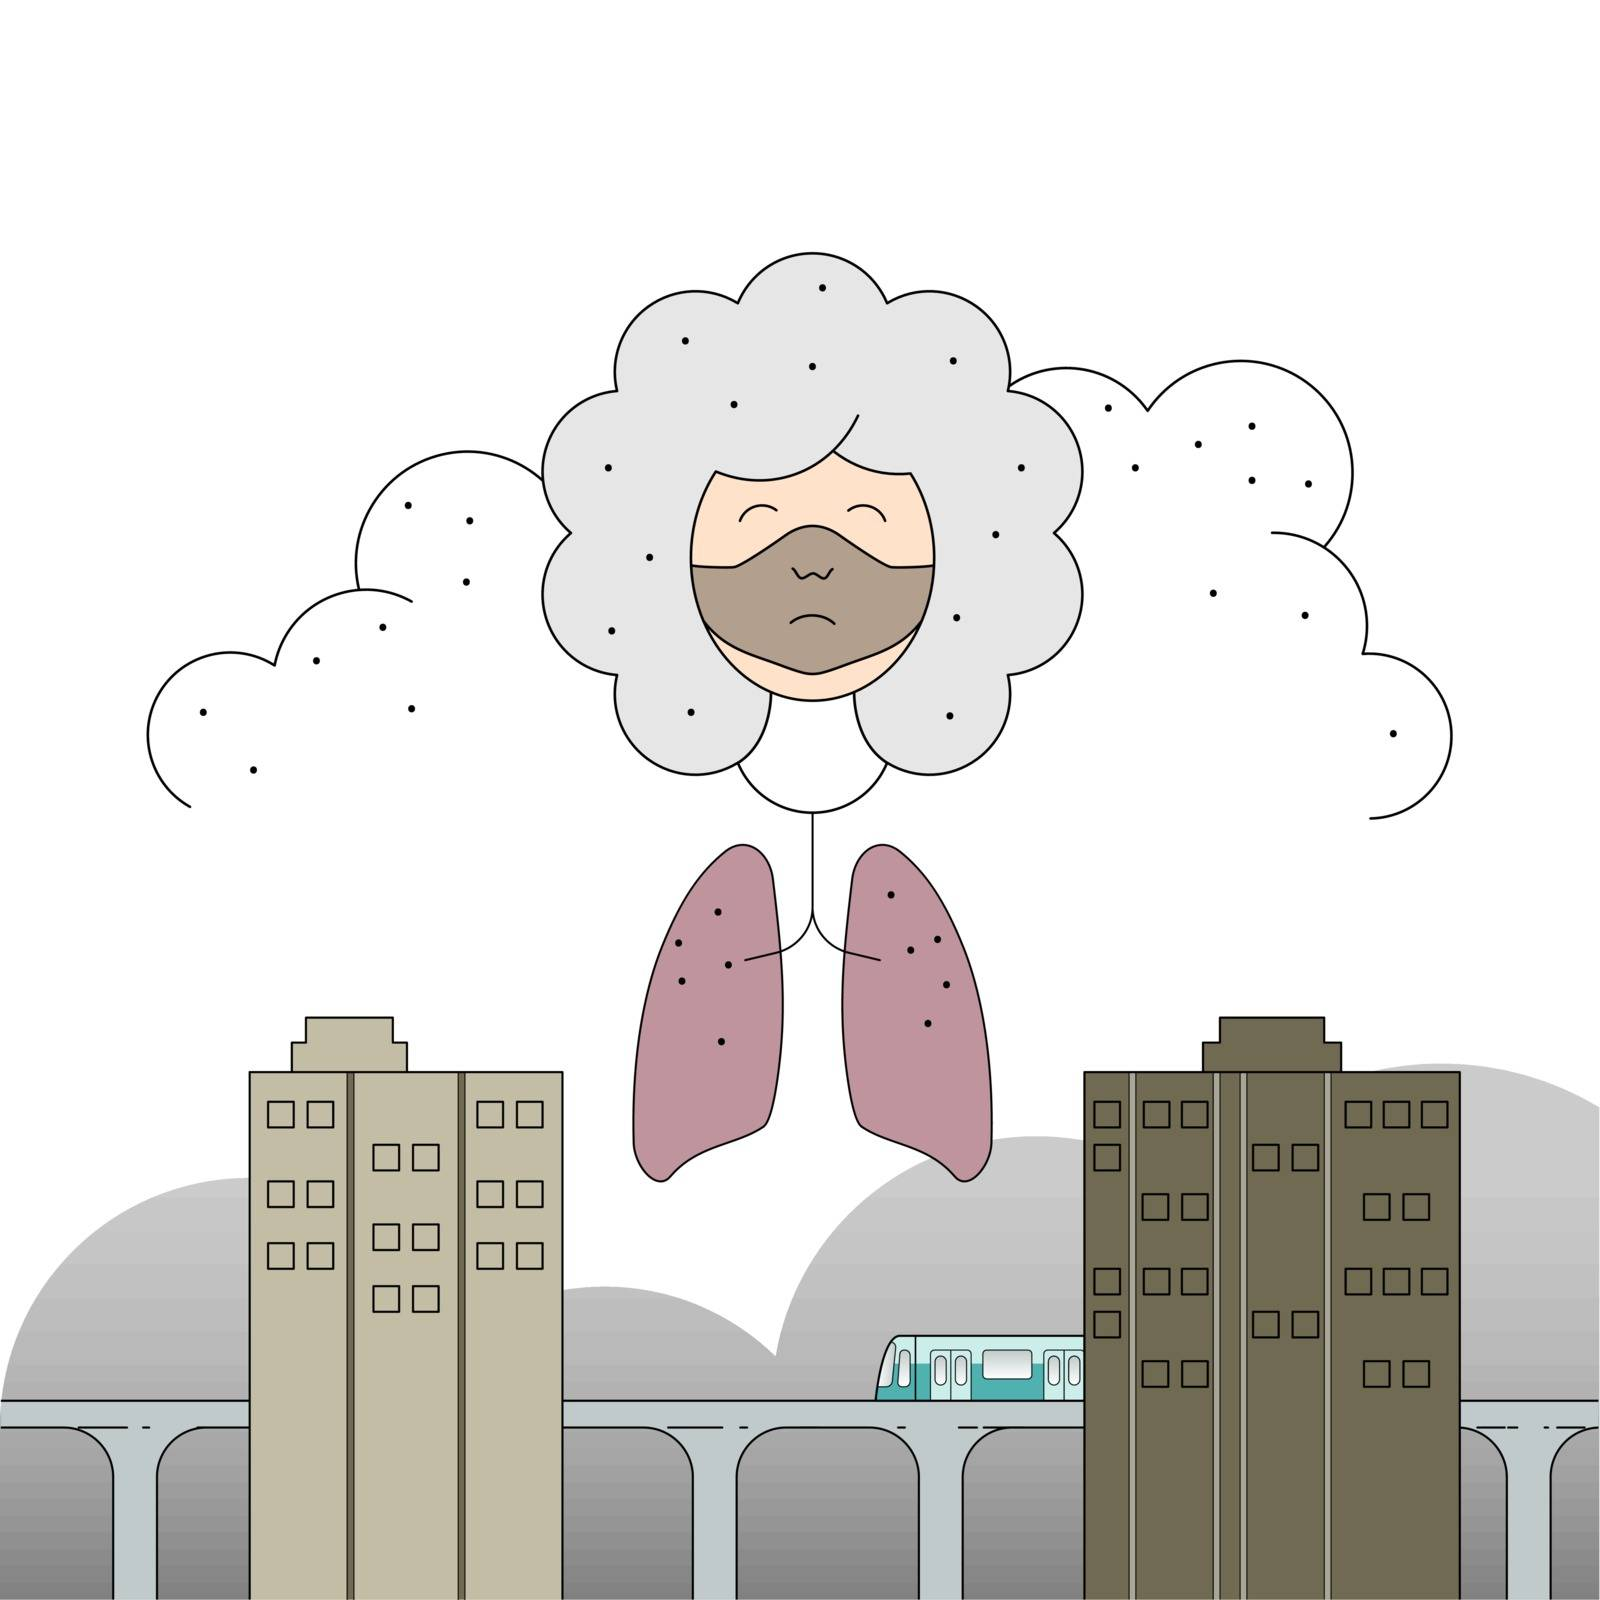 Air pollution in big city affect human health. Vector illustration outline flat design style.